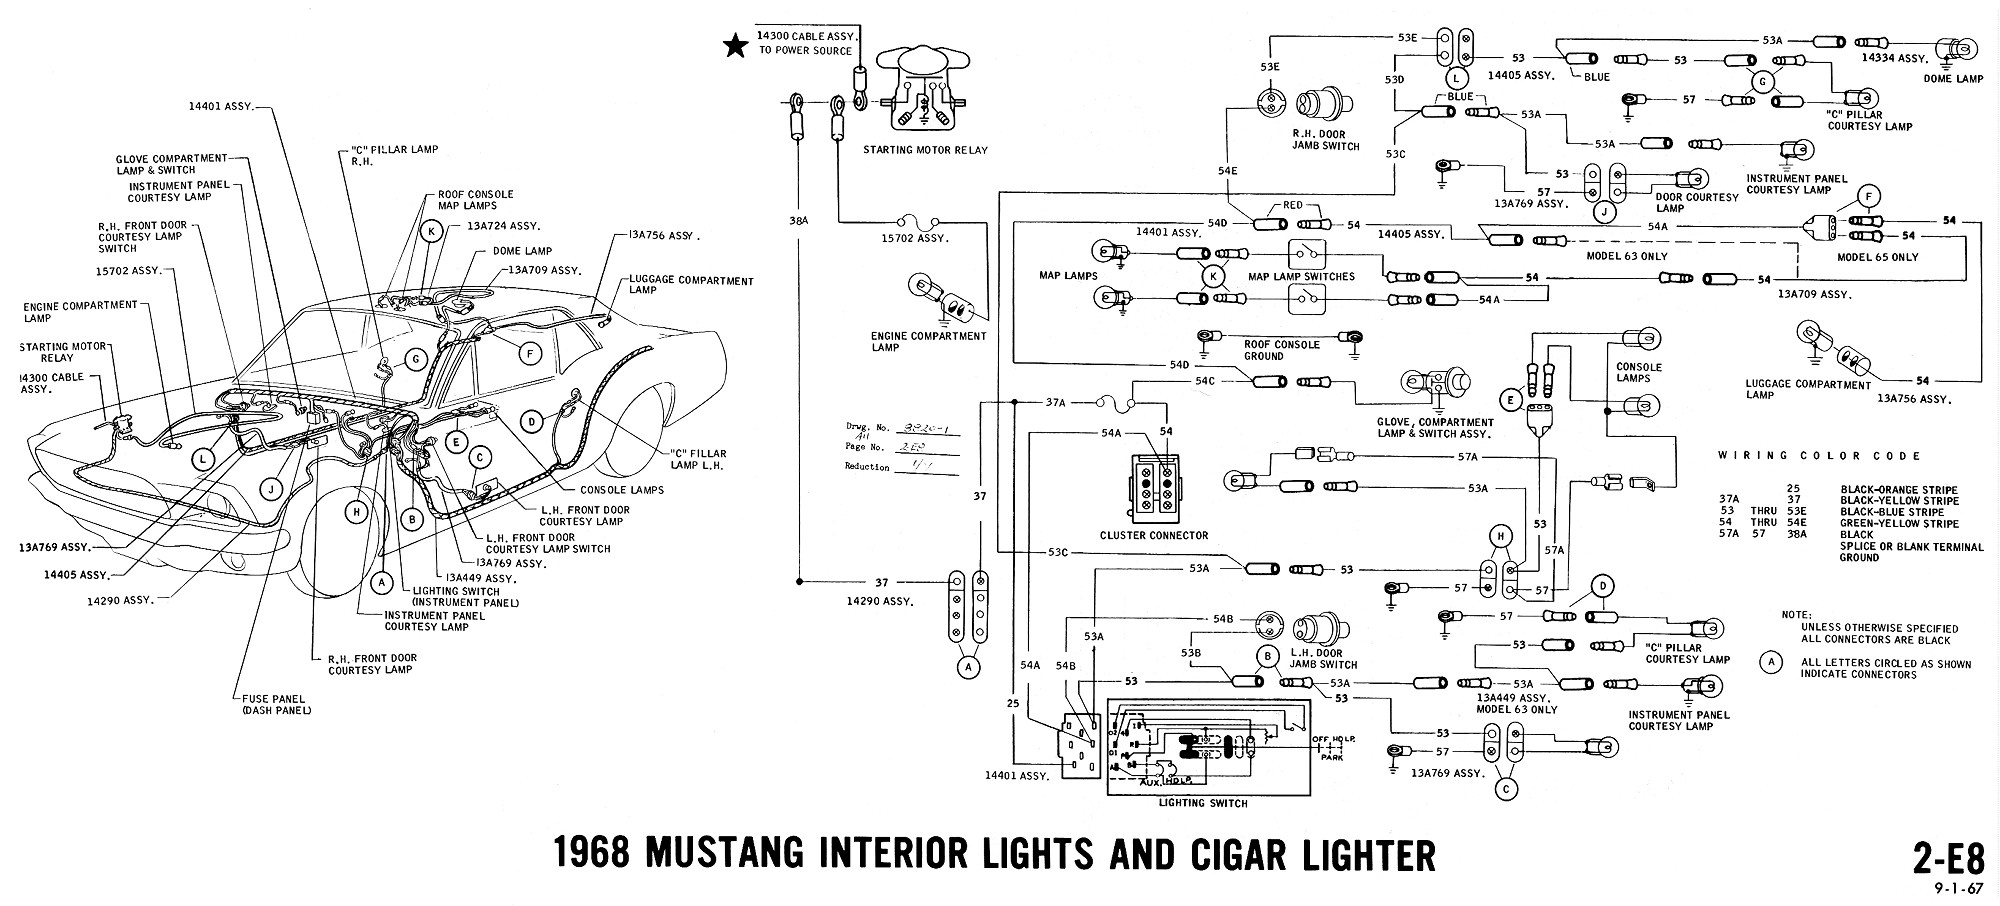 1968 mustang wiring diagram interior lights cigar lighter 68 mustang wiring diagram 1969 mustang wiring diagram online Rear Defroster Symbol at webbmarketing.co